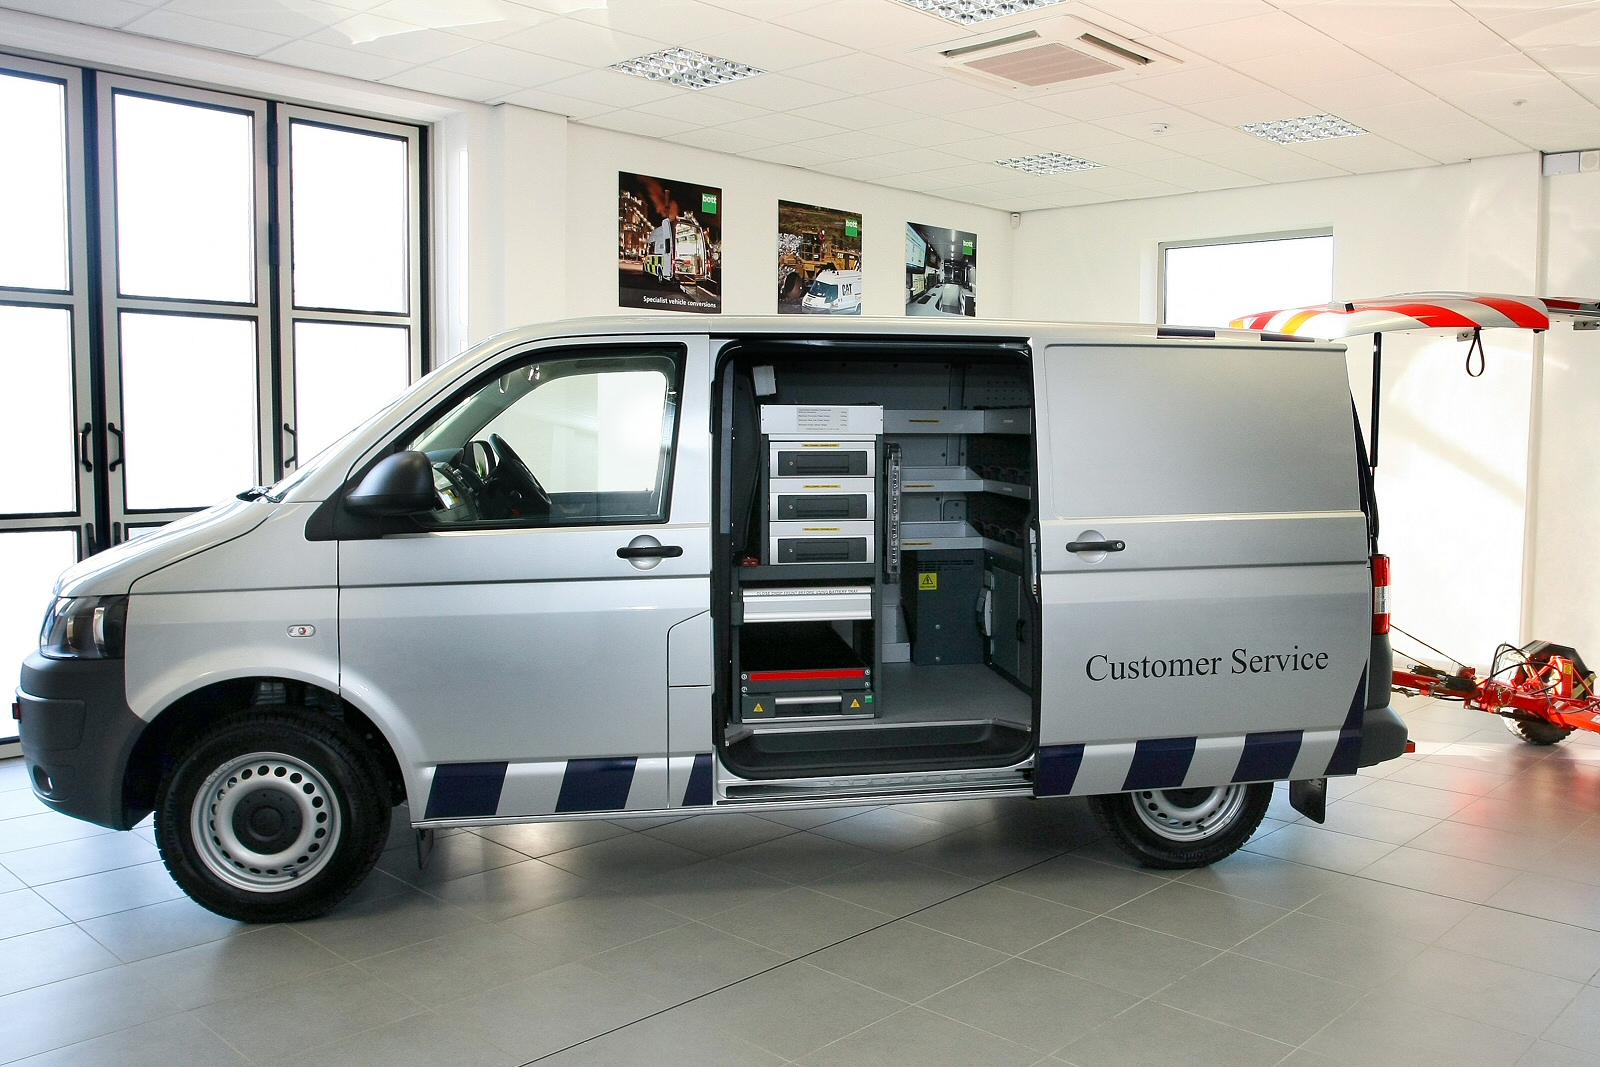 Image two of a Volkswagen Transporter van range